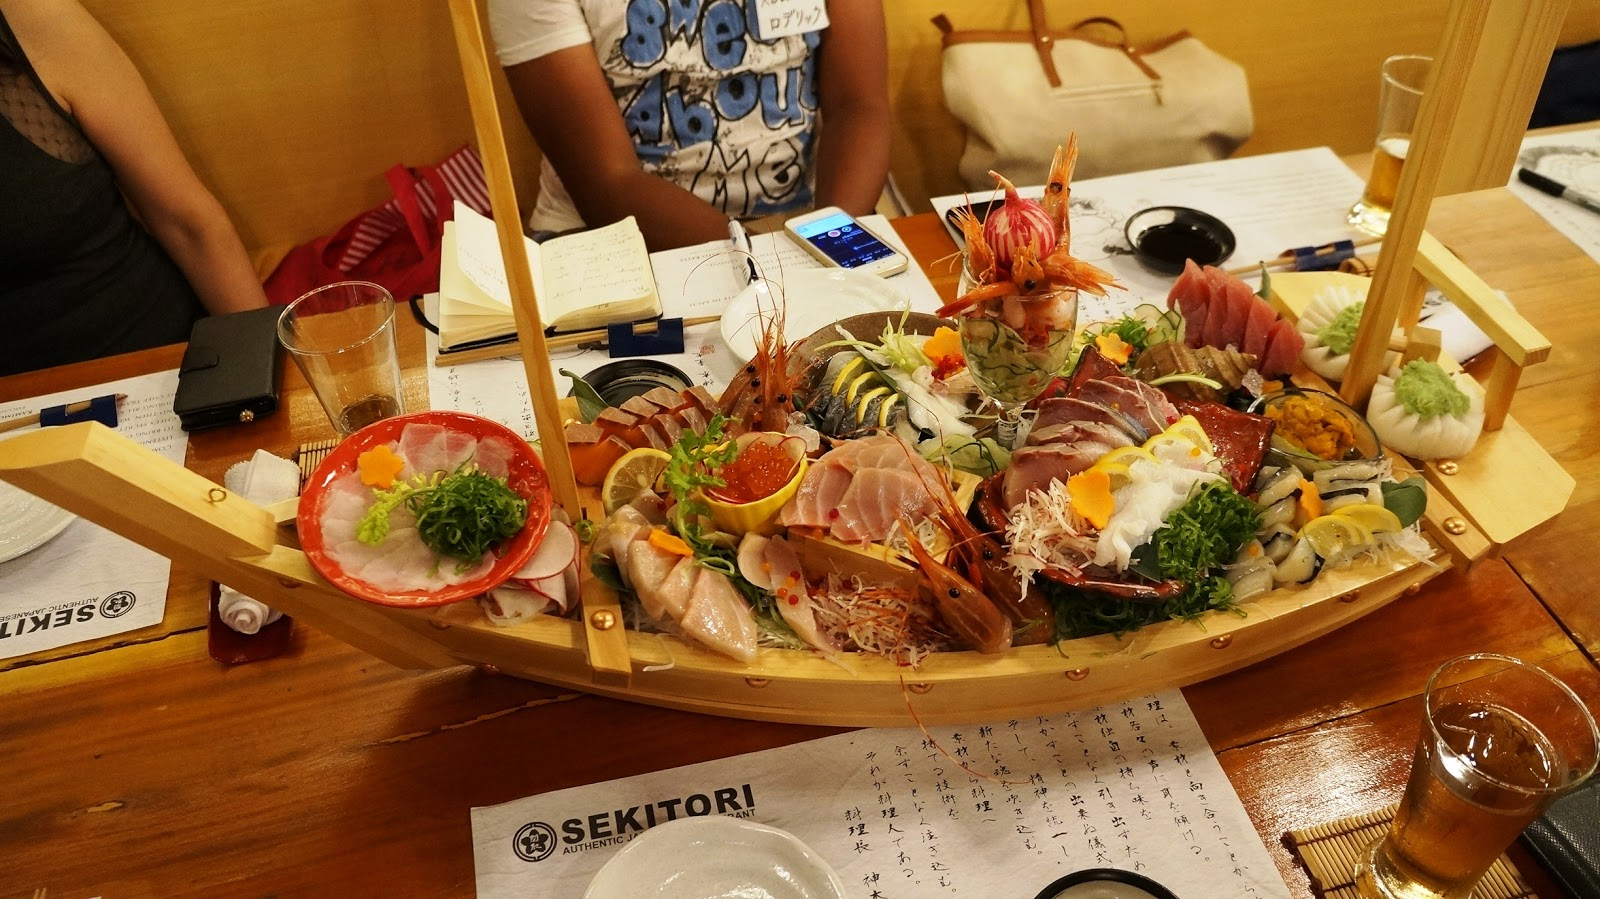 Sekitori authentic japanese restaurant wazzup pilipinas for Authentic japanese cuisine